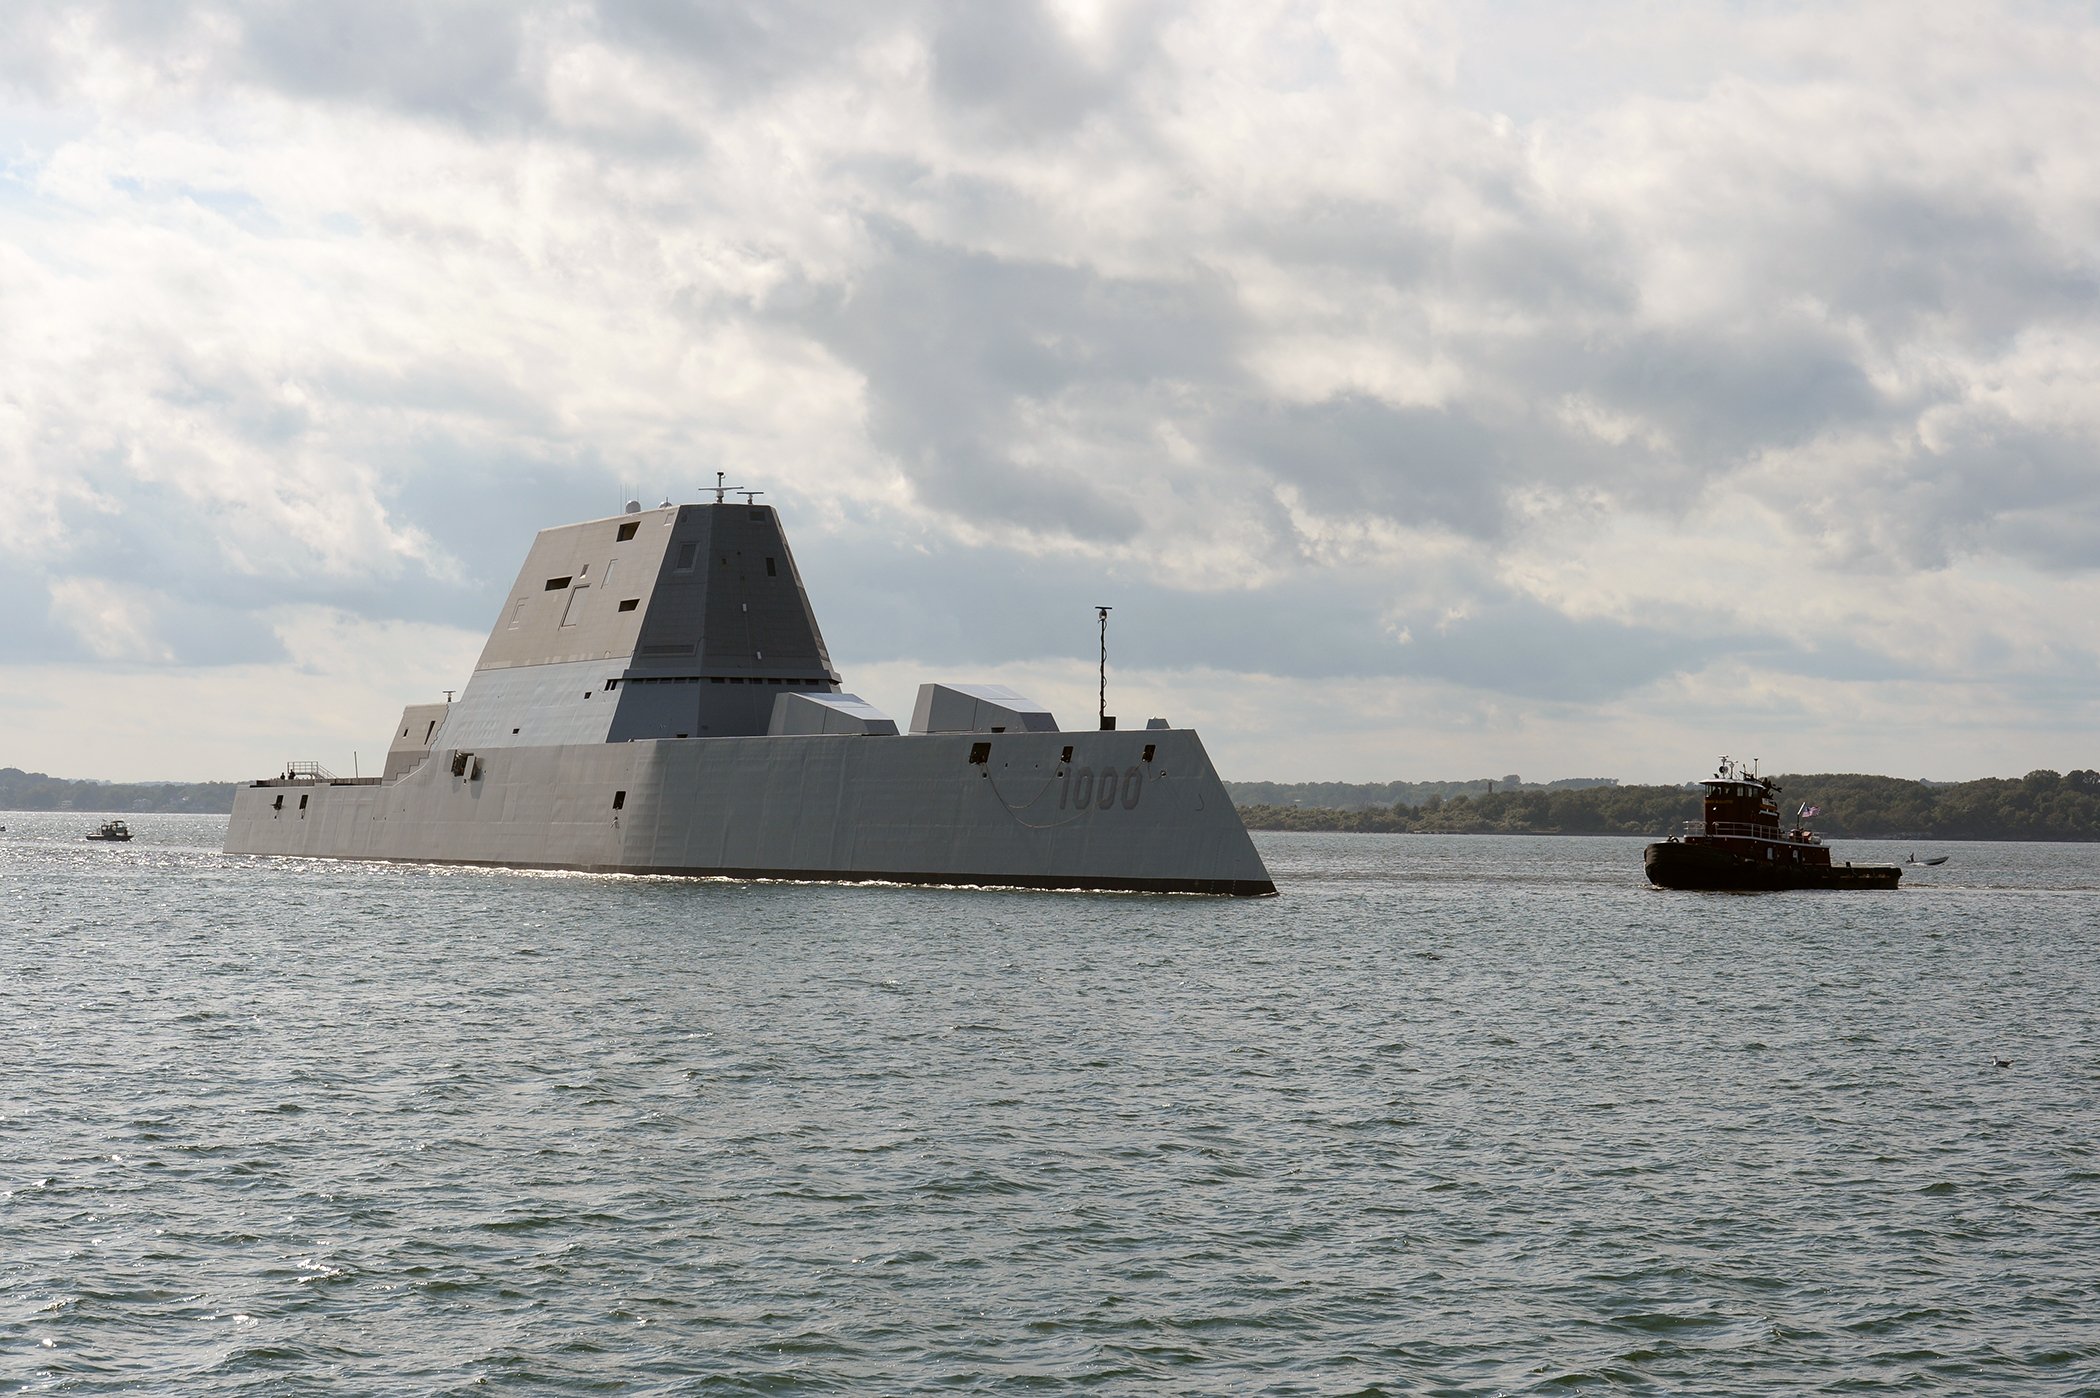 Zumwalt (DDG 1000) arrives at Naval Station Newport, Rhode Island during its maiden voyage from Bath Iron Works Shipyard in Bath, Maine on Sept. 8, 2016. US Navy Photo